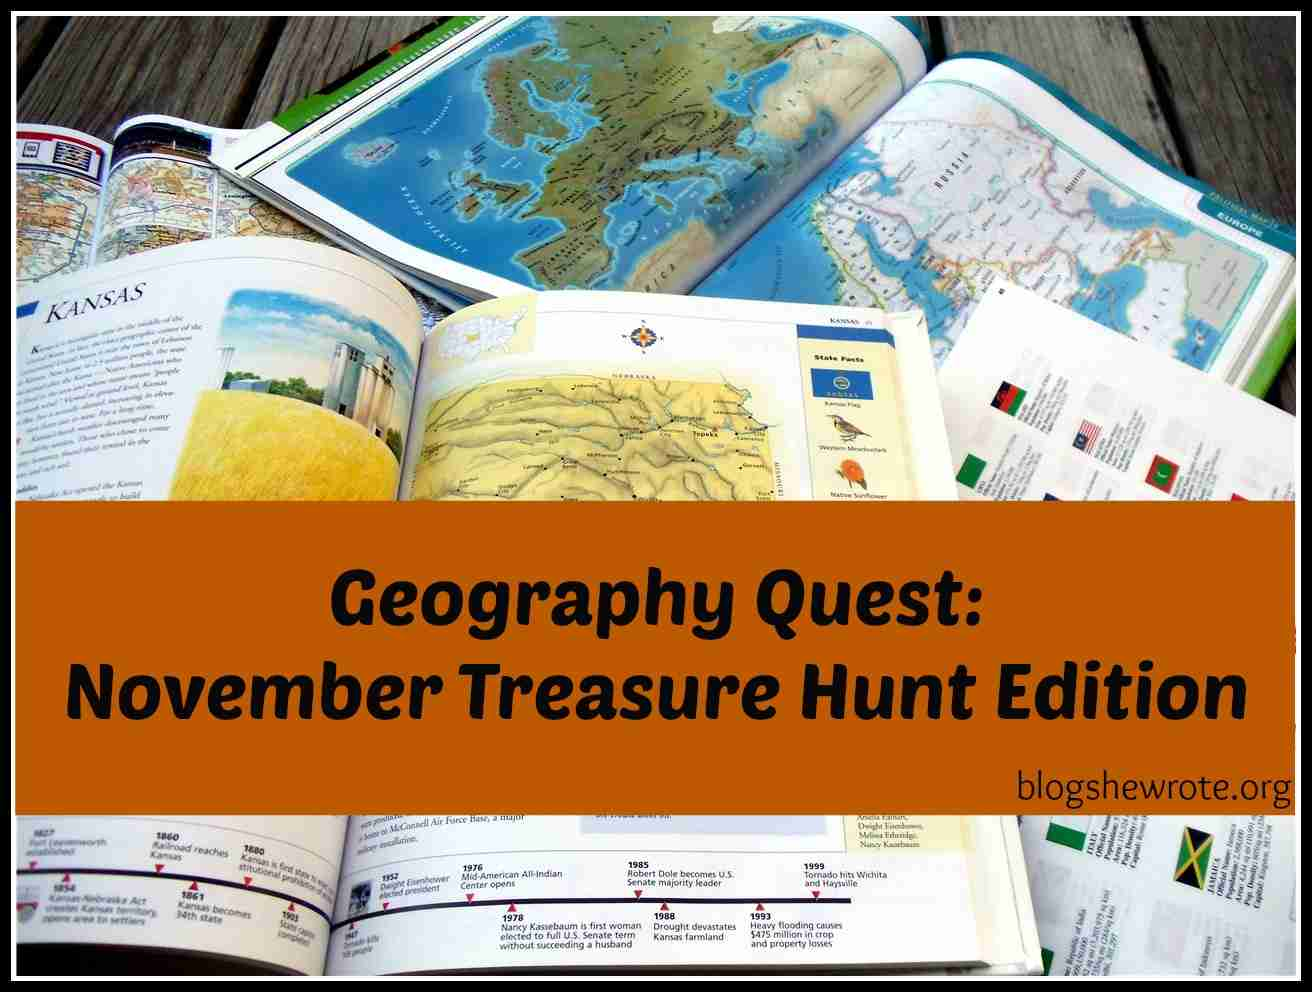 Blog, She Wrote: November Treasure Hunt Edition